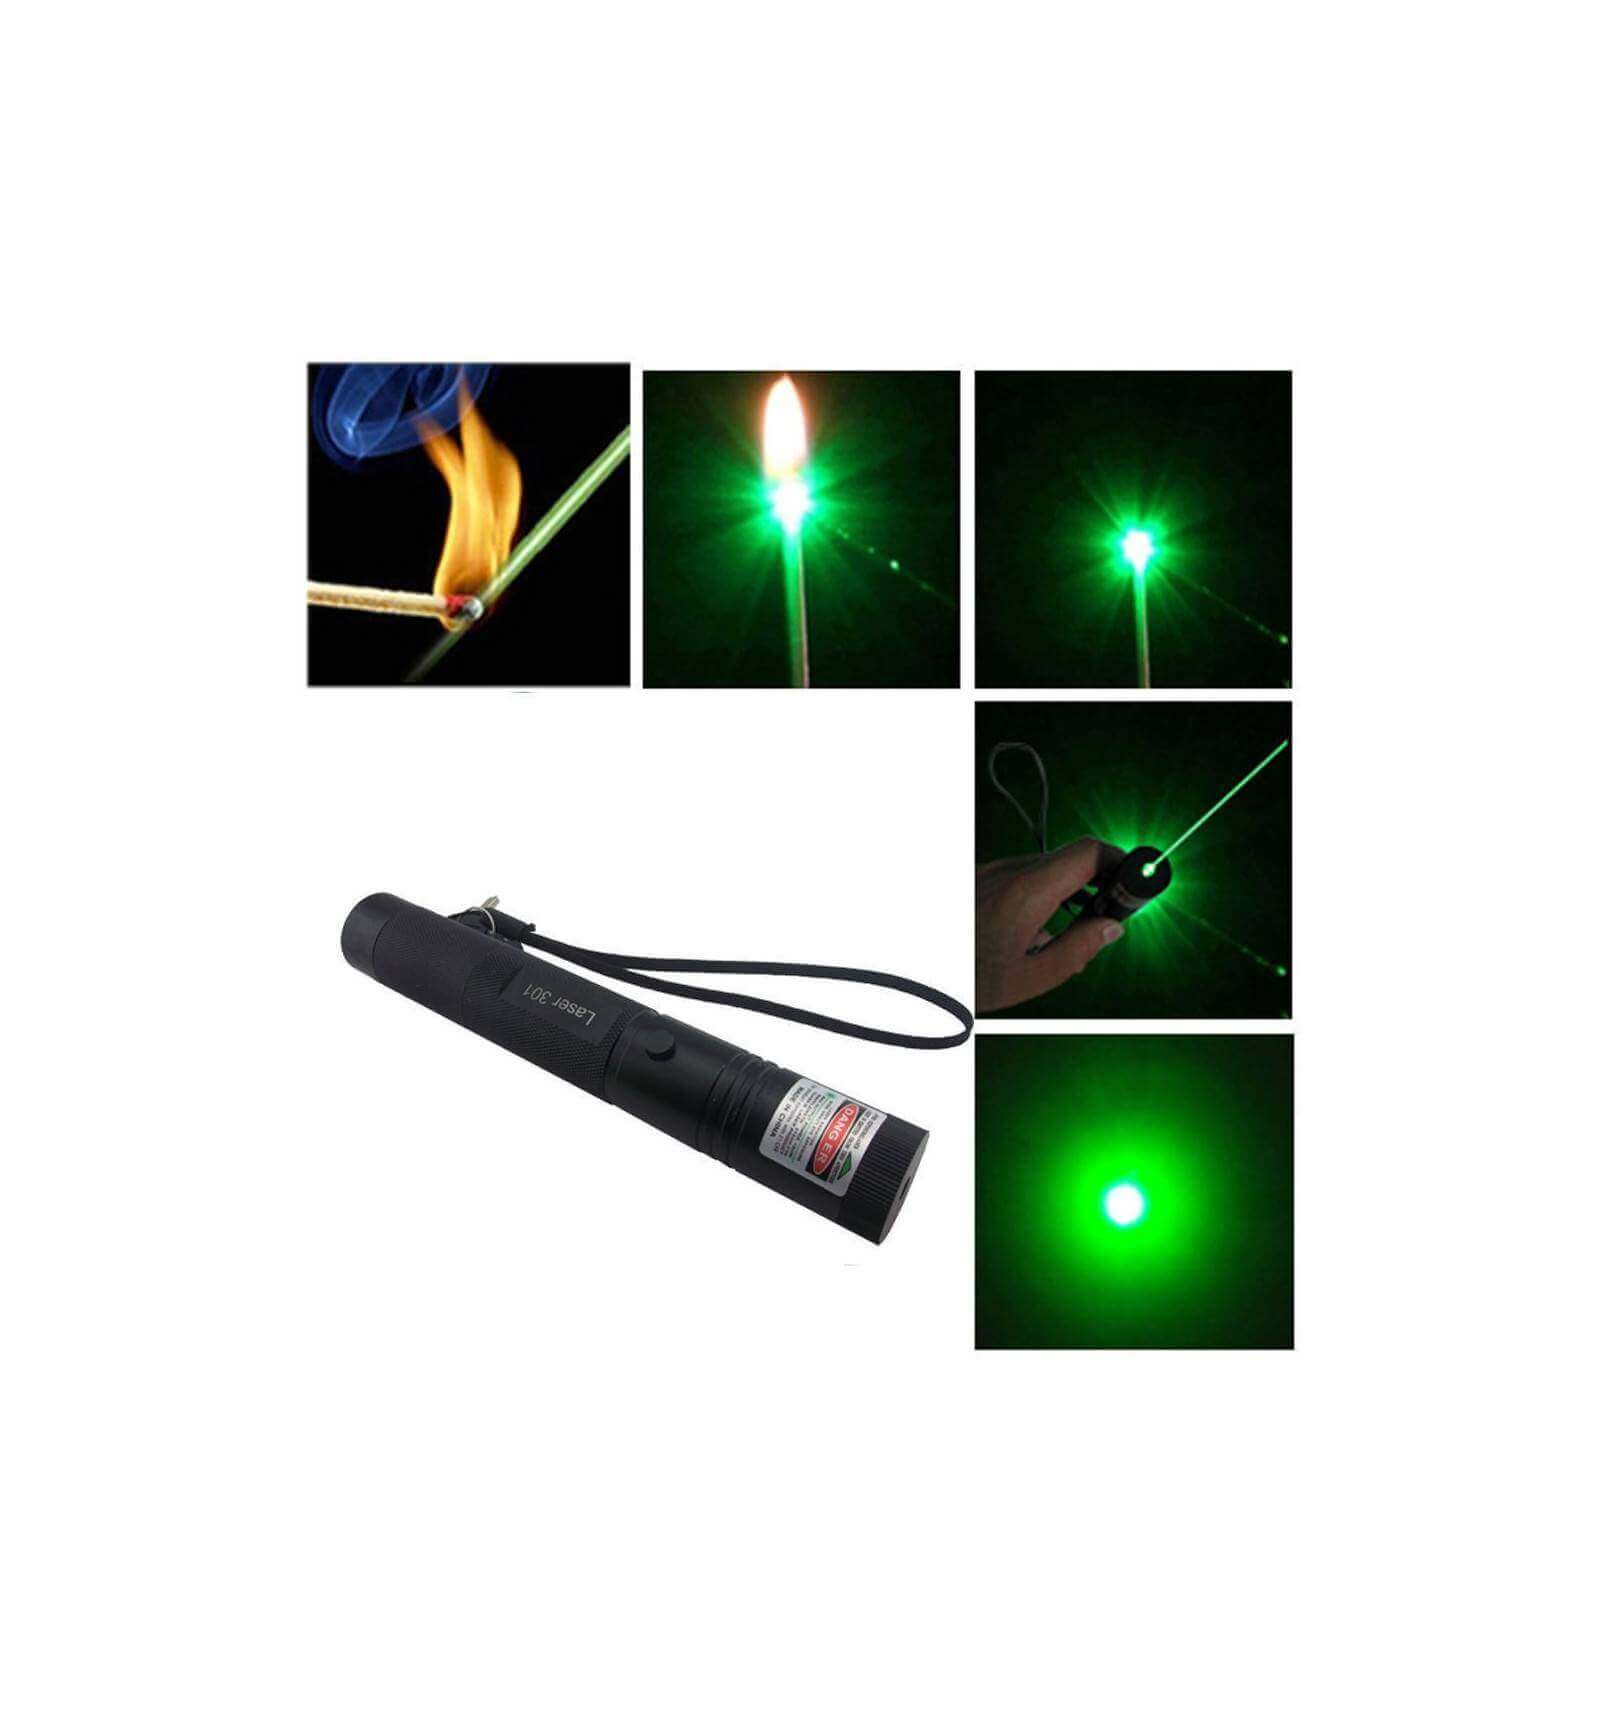 Green Laser 5000mw Rechargeable 532nm For Lasers